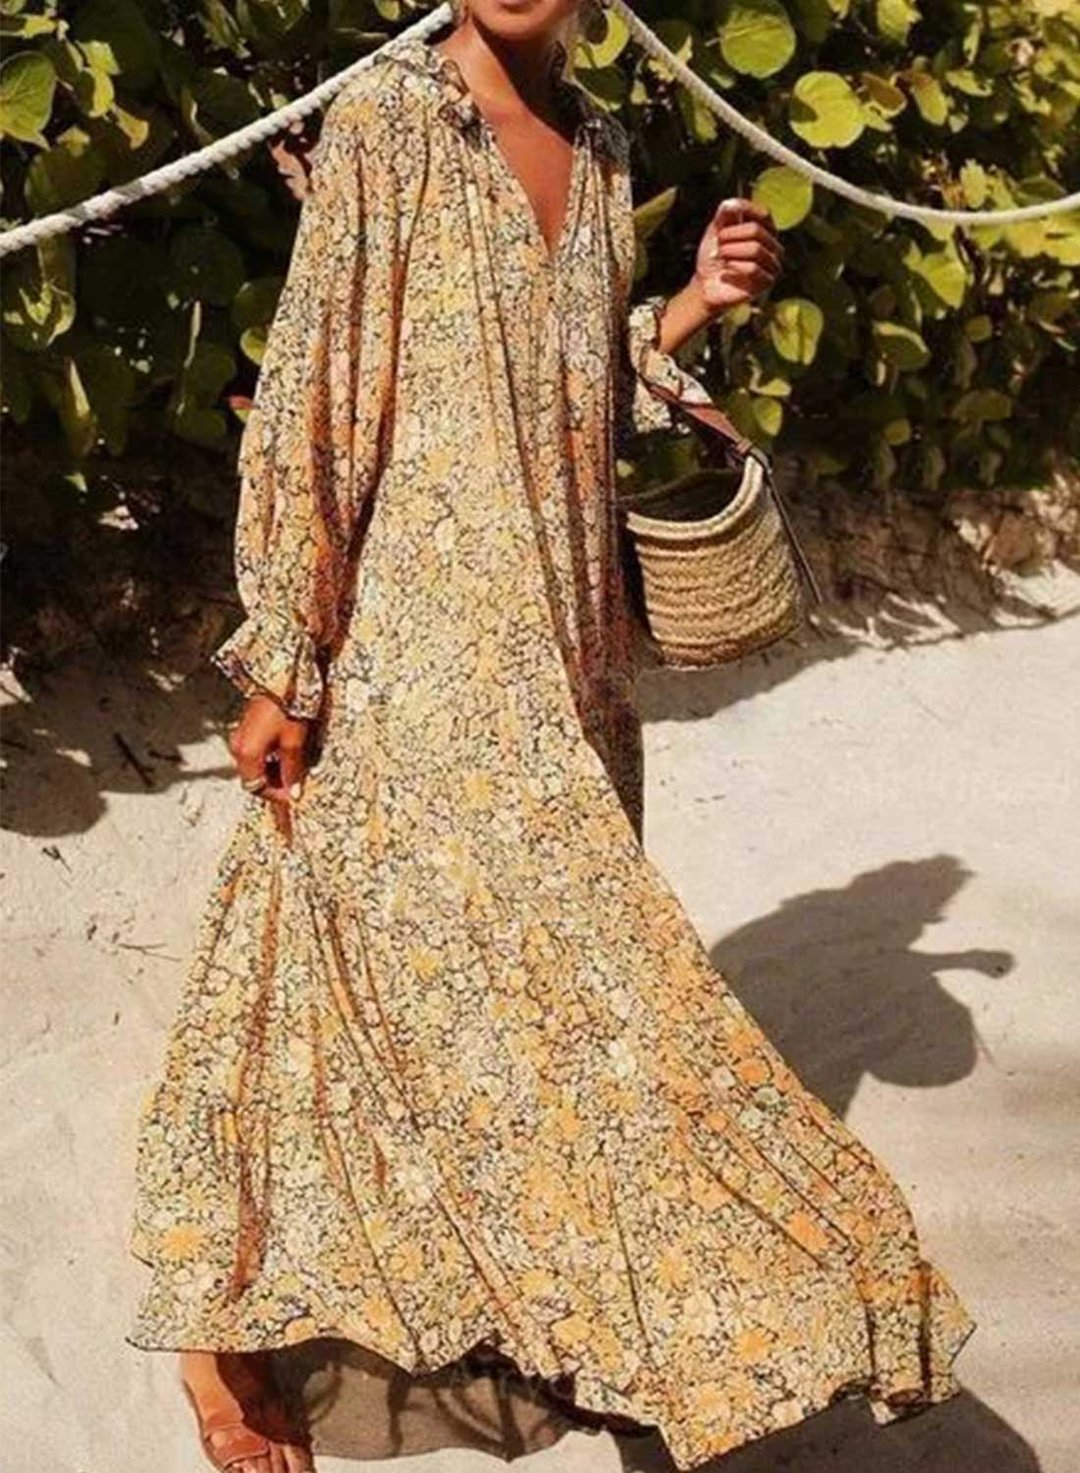 Yellow Women's Maxi Dresses Floral Long Sleeve Flare V Neck Dress LC614549-7